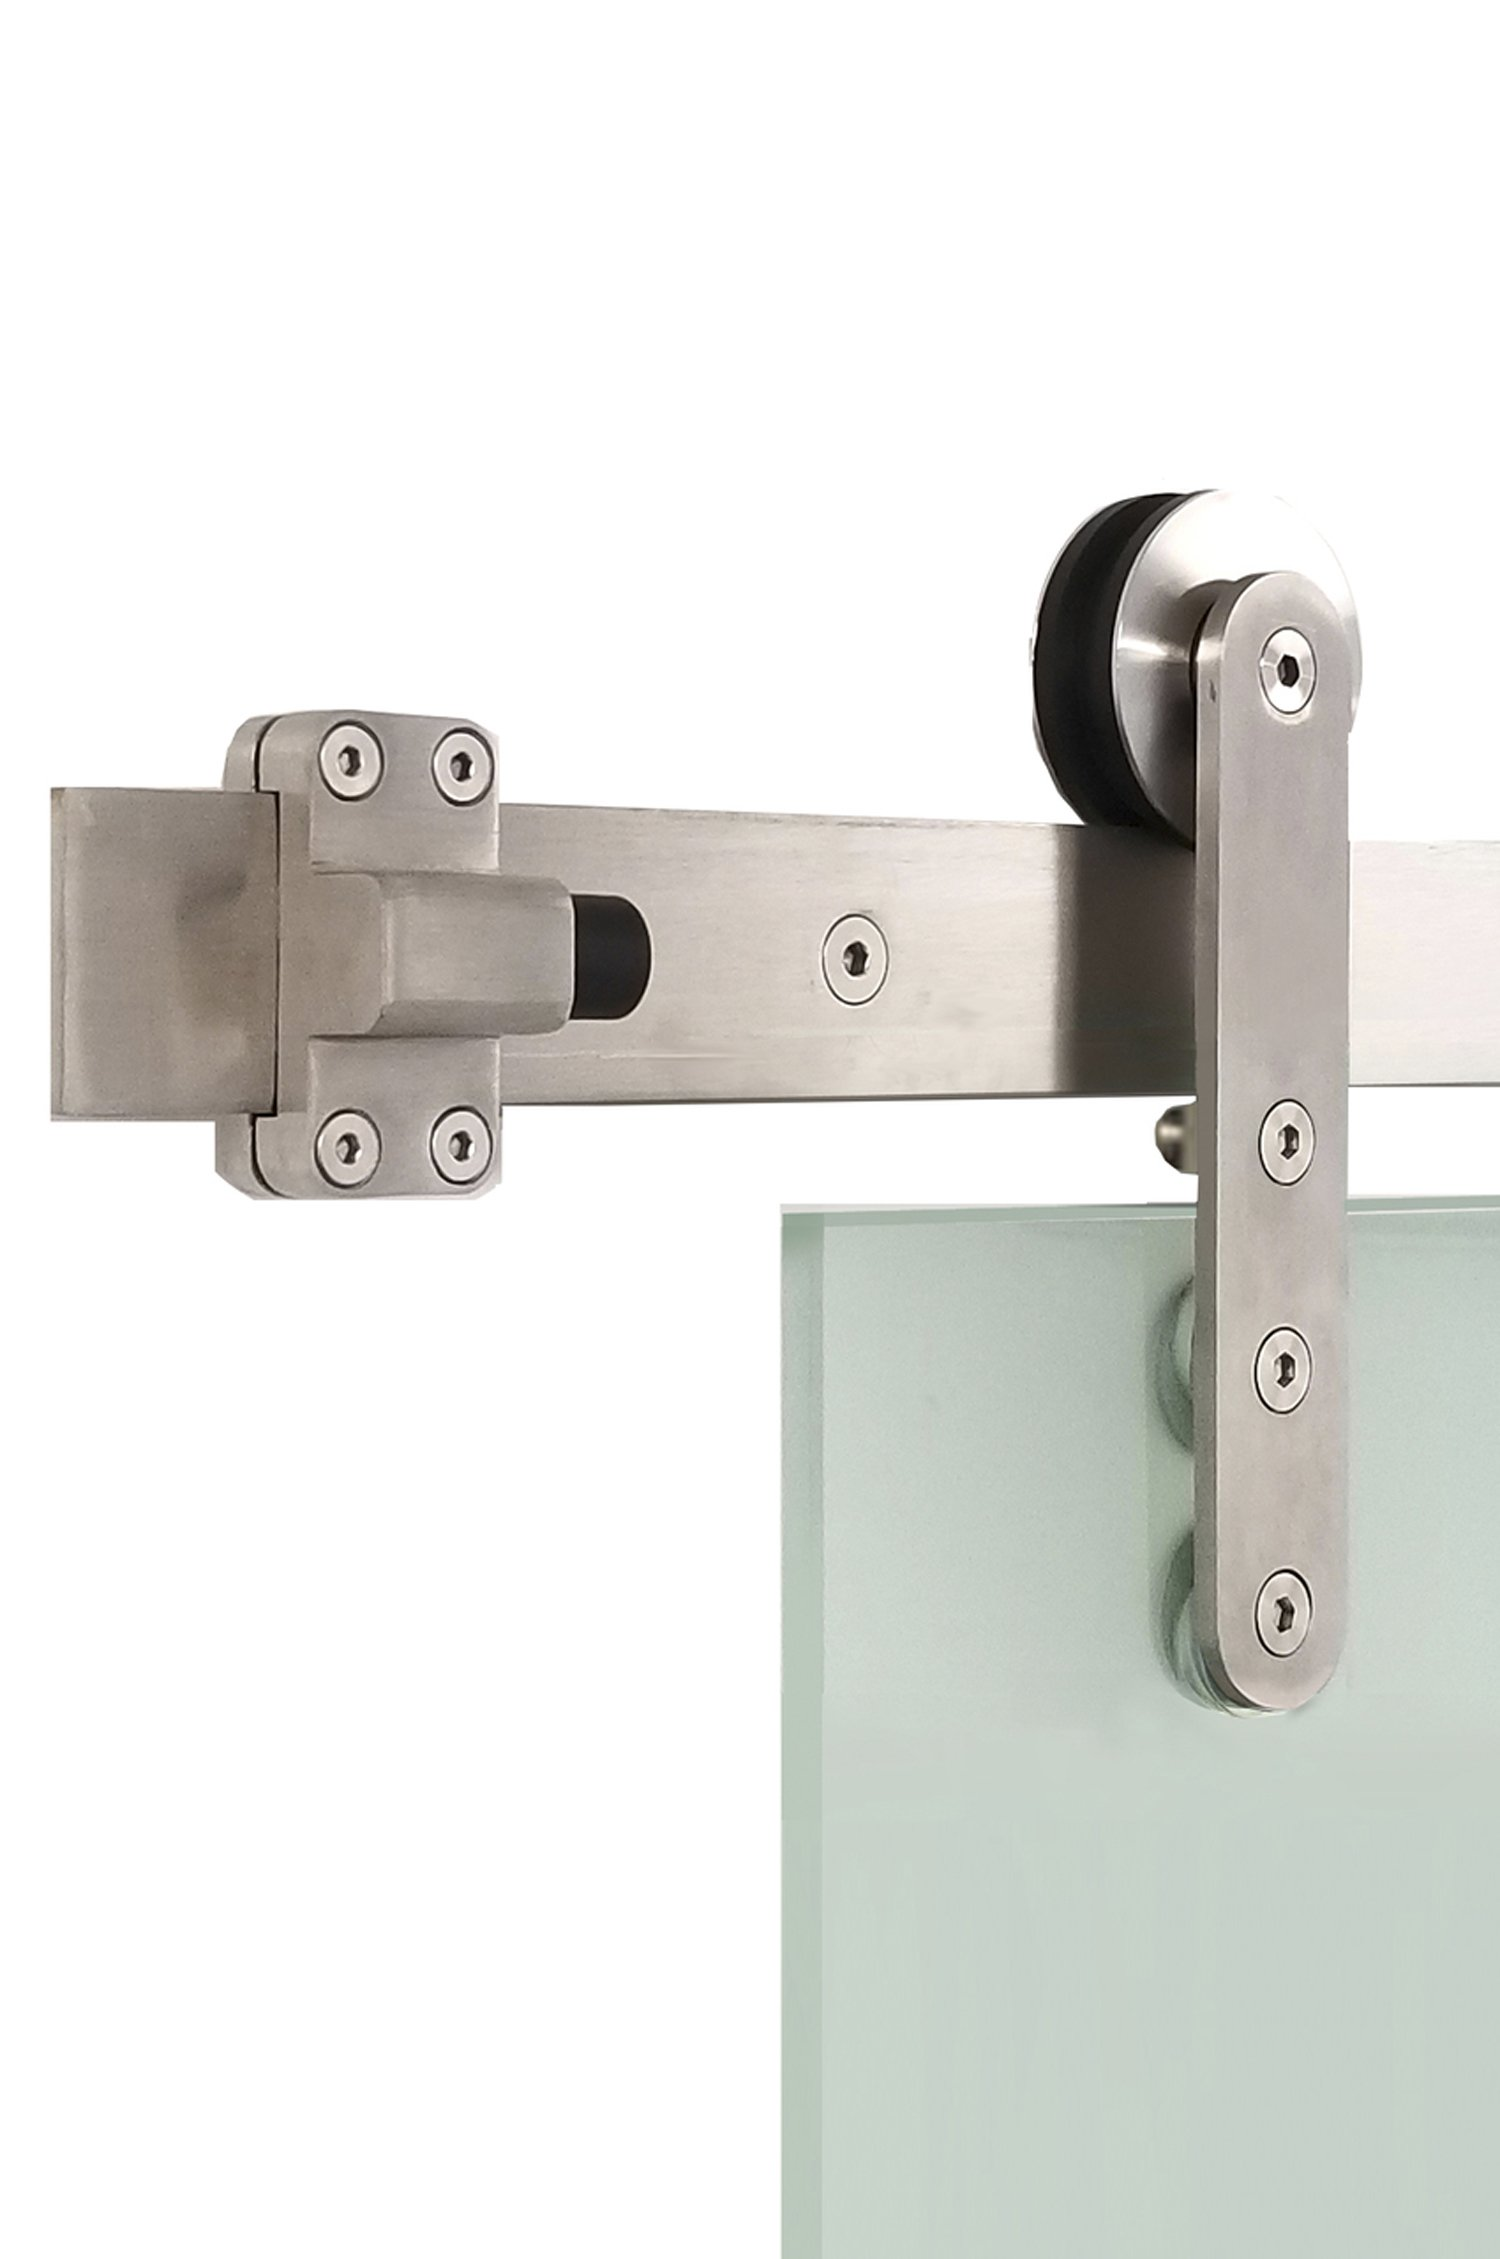 Contemporary Flat Track Stainless Steel Sliding Barn Door Hardware for Glass Doors / Satin Finish - Torch GF Series (5 Feet Rail Length)